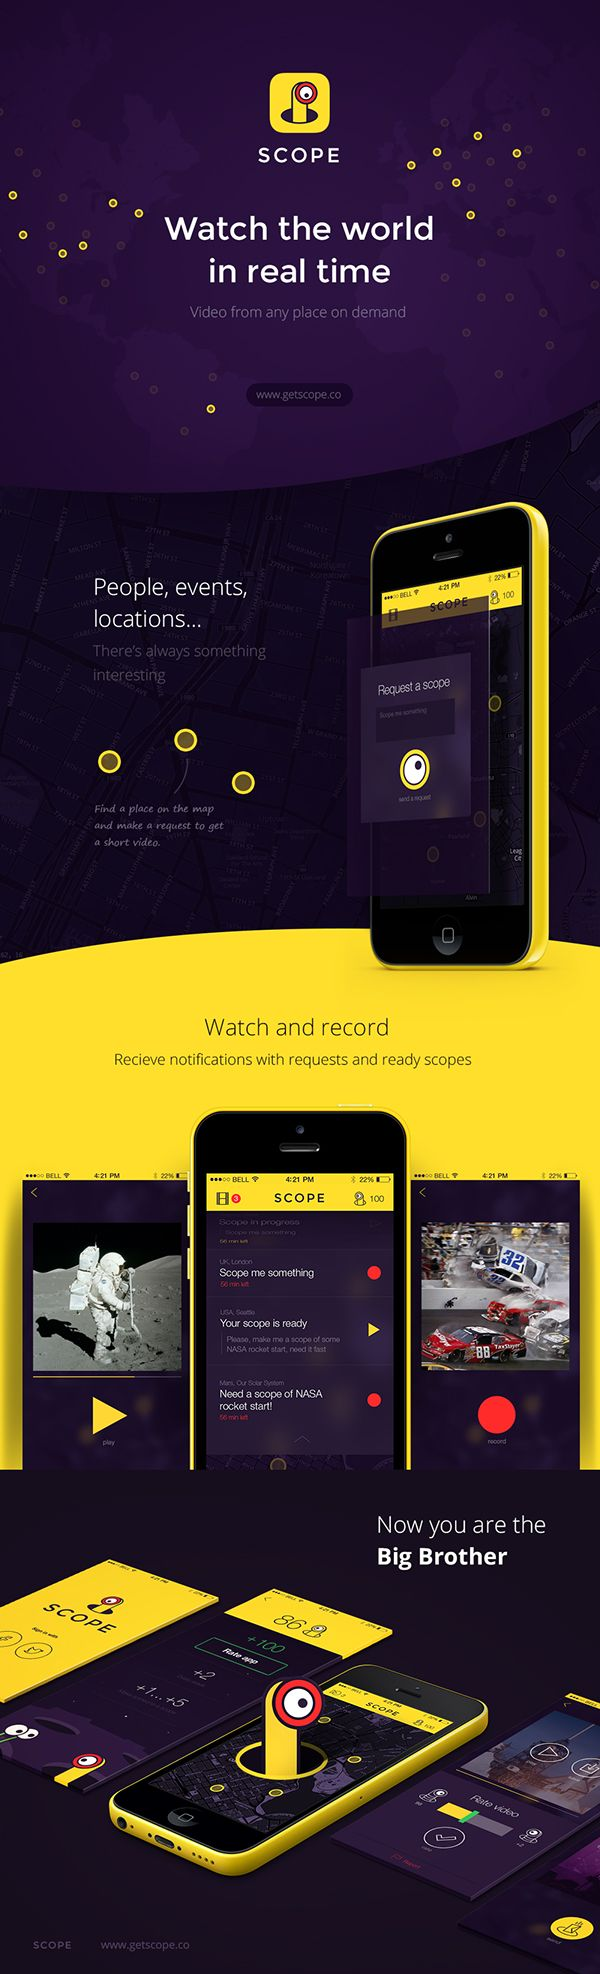 SCOPE - Social Video Messenger by Leonid Vazniuk, via Behance